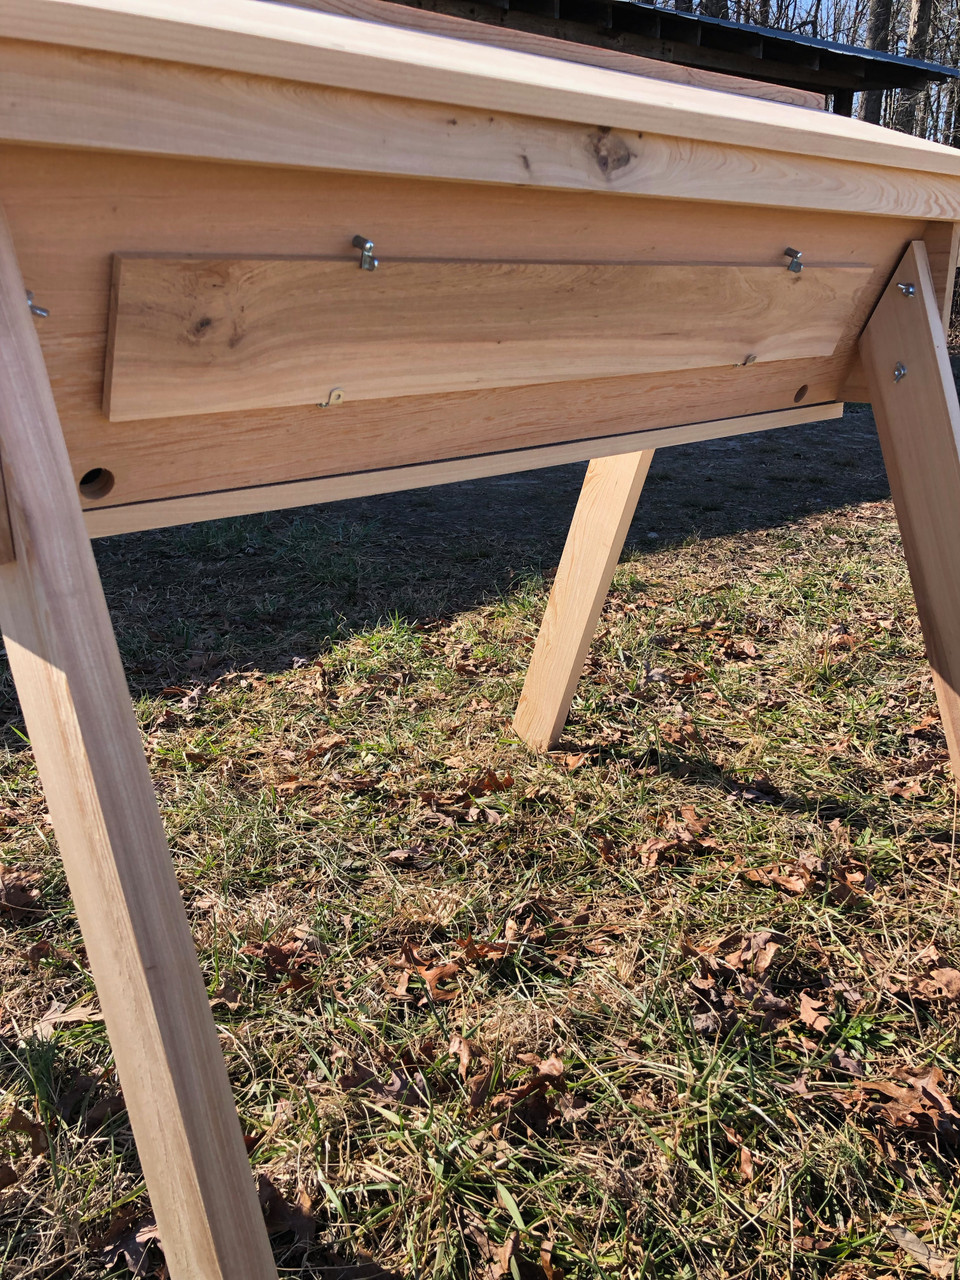 The Gold Star top bar hive has two rear entrances.  This feature, combined with the two included follower boards makes this hive extremely versatile, allowing for easy hive splits, and for housing two colonies in the same hive when necessary.